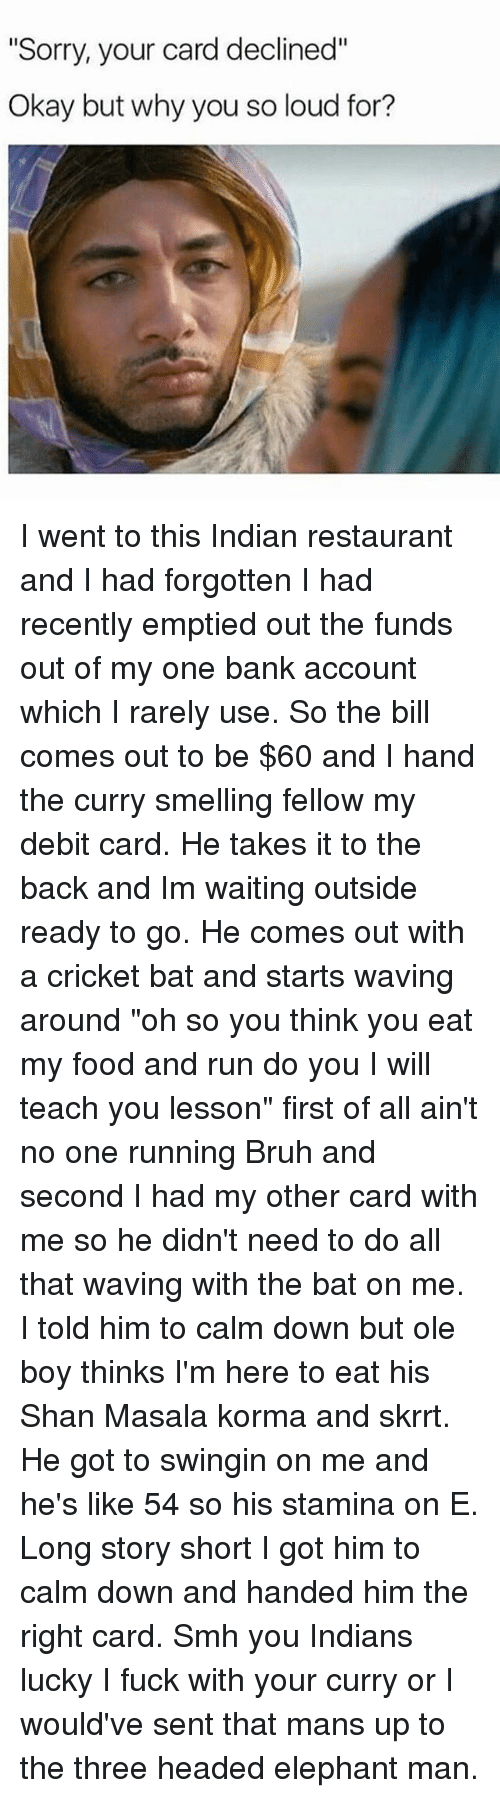 """cricket bat: """"Sorry, your card declined""""  Okay but why you so loud for? I went to this Indian restaurant and I had forgotten I had recently emptied out the funds out of my one bank account which I rarely use. So the bill comes out to be $60 and I hand the curry smelling fellow my debit card. He takes it to the back and Im waiting outside ready to go. He comes out with a cricket bat and starts waving around """"oh so you think you eat my food and run do you I will teach you lesson"""" first of all ain't no one running Bruh and second I had my other card with me so he didn't need to do all that waving with the bat on me. I told him to calm down but ole boy thinks I'm here to eat his Shan Masala korma and skrrt. He got to swingin on me and he's like 54 so his stamina on E. Long story short I got him to calm down and handed him the right card. Smh you Indians lucky I fuck with your curry or I would've sent that mans up to the three headed elephant man."""